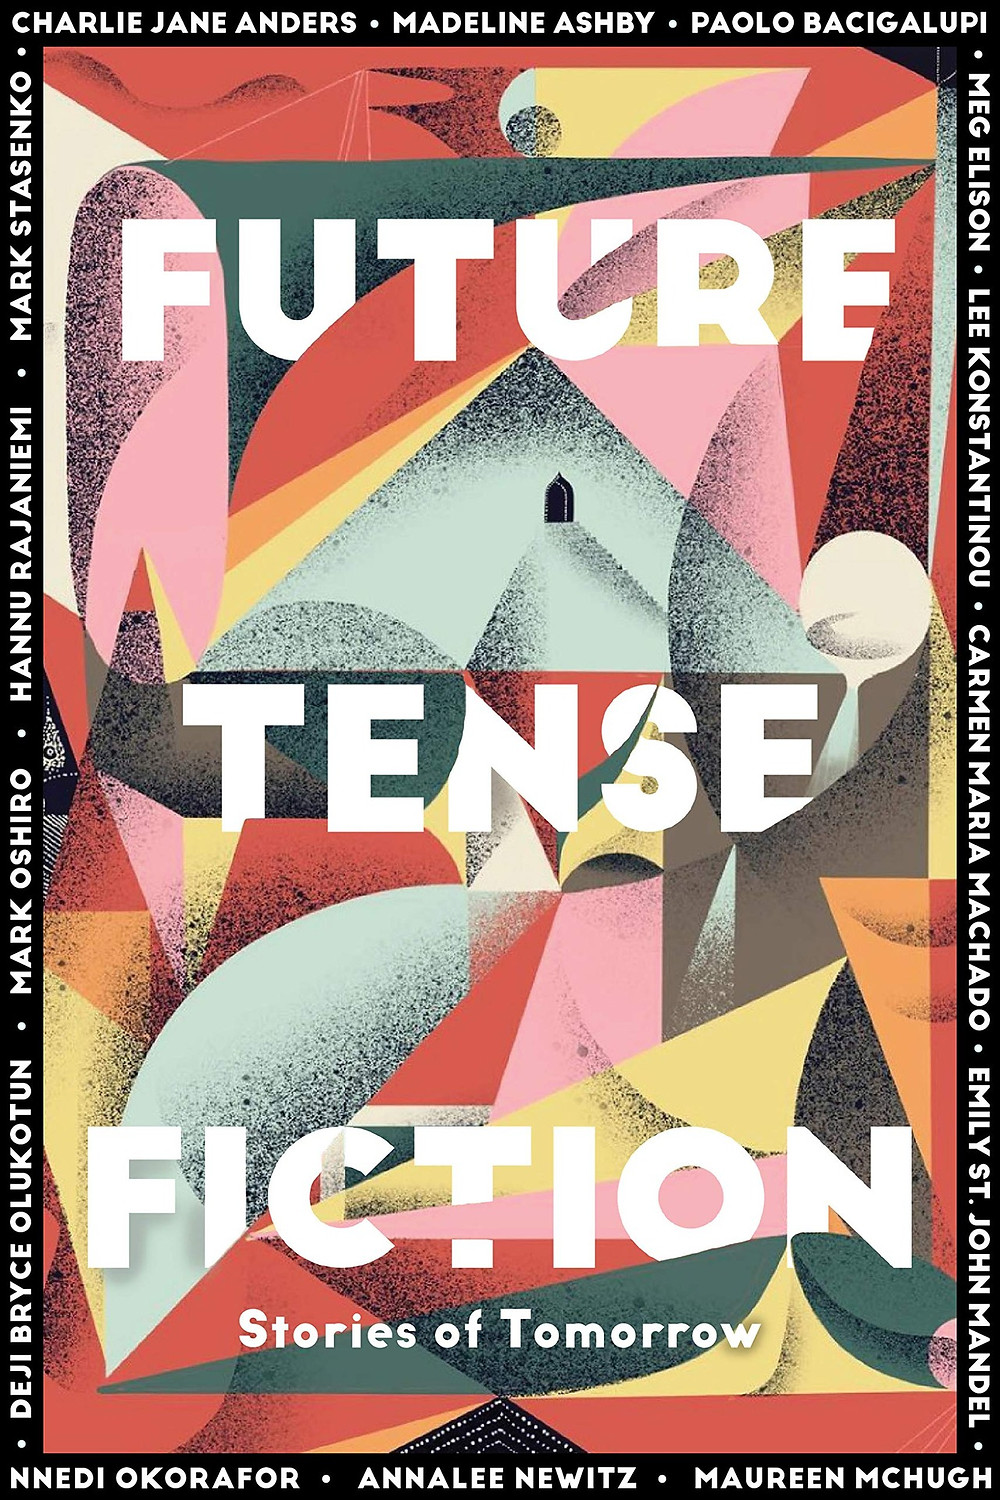 """Future Tense Fiction: Stories of Tomorrow edited by Kristen Berg, Torie Bosch et al. thebookslut book reviews. Charlie Jane Anders is the author of The City in the Middle of the Night and All the Birds in the Sky, which won the Nebula, Locus and Crawford awards and was on Time Magazine's list of the 10 best novels of 2016. Her Tor.com story """"Six Months, Three Days"""" won a Hugo Award and appears in a new short story collection called Six Months, Three Days, Five Others. Her short fiction has appeared in Tor.com, Wired Magazine, Slate, Tin House, Conjunctions, Boston Review, Asimov's Science Fiction, The Magazine of Fantasy & Science Fiction, McSweeney's Internet Tendency, ZYZZYVA, and several anthologies. She was a founding editor of io9.com, and she organizes the monthly Writers With Drinks reading series and co-hosts the podcast Our Opinions Are Correct with Annalee Newitz. Her first novel, Choir Boy, won a Lambda Literary Award. Madeline Ashby is a science fiction writer and strategic foresight consultant living in Toronto. She is the author of the Machine Dynasty series from Angry Robot Books, and the novel Company Town from Tor Books, which was a Canada Reads finalist. As a futurist, she has developed science fiction prototypes for Intel Labs, the Institute for the Future, SciFutures, Nesta, the Atlantic Council, Data & Society, InteraXon, and others. Her essays have appeared at BoingBoing, io9, WorldChanging, Creators Project, Arcfinity, MISC Magazine, and FutureNow. She is married to horror writer and journalist David Nickle. With him, she is the co-editor of Licence Expired: The Unauthorized James Bond, an anthology of Bond stories available only in Canada. You can find her at madelineashby.com and on Twitter @MadelineAshby. Paolo Bacigalupi's writing has appeared in WIRED Magazine, Slate, Medium, Salon.com, and High Country News, as well as The Magazine of Fantasy and Science Fiction and Asimov's Science Fiction Magazine. His short fiction been nominated for """